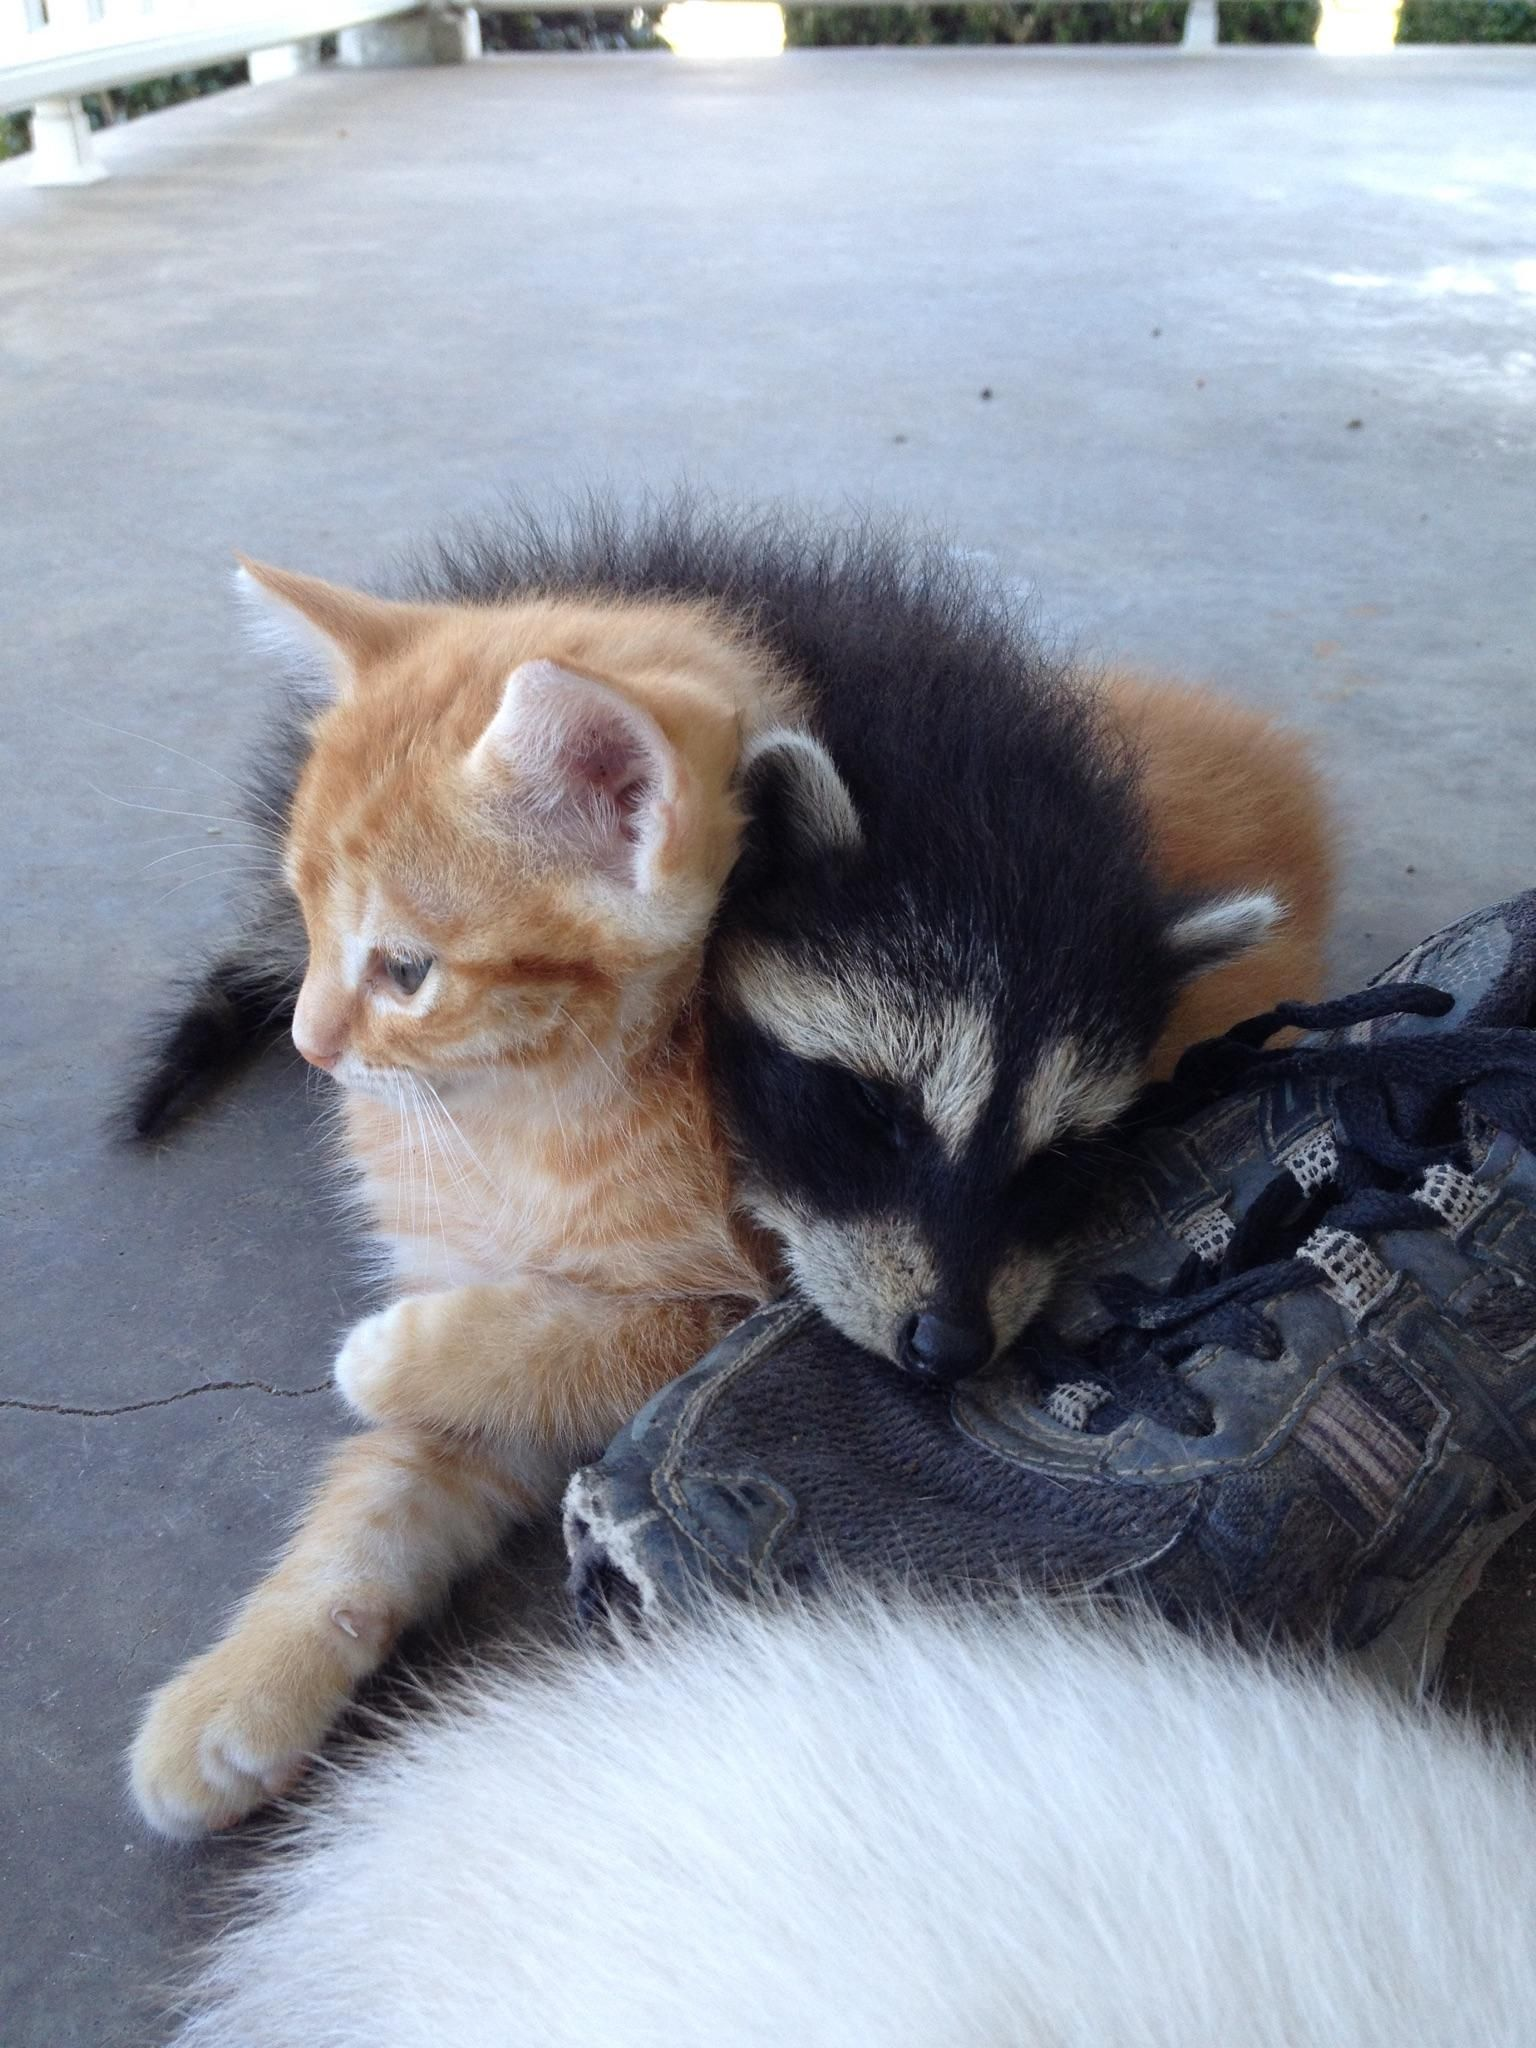 My Friends Cat Is Raising An Abandoned Raccoon With Its Kittens Cute Animals Animals Friends Animals Friendship